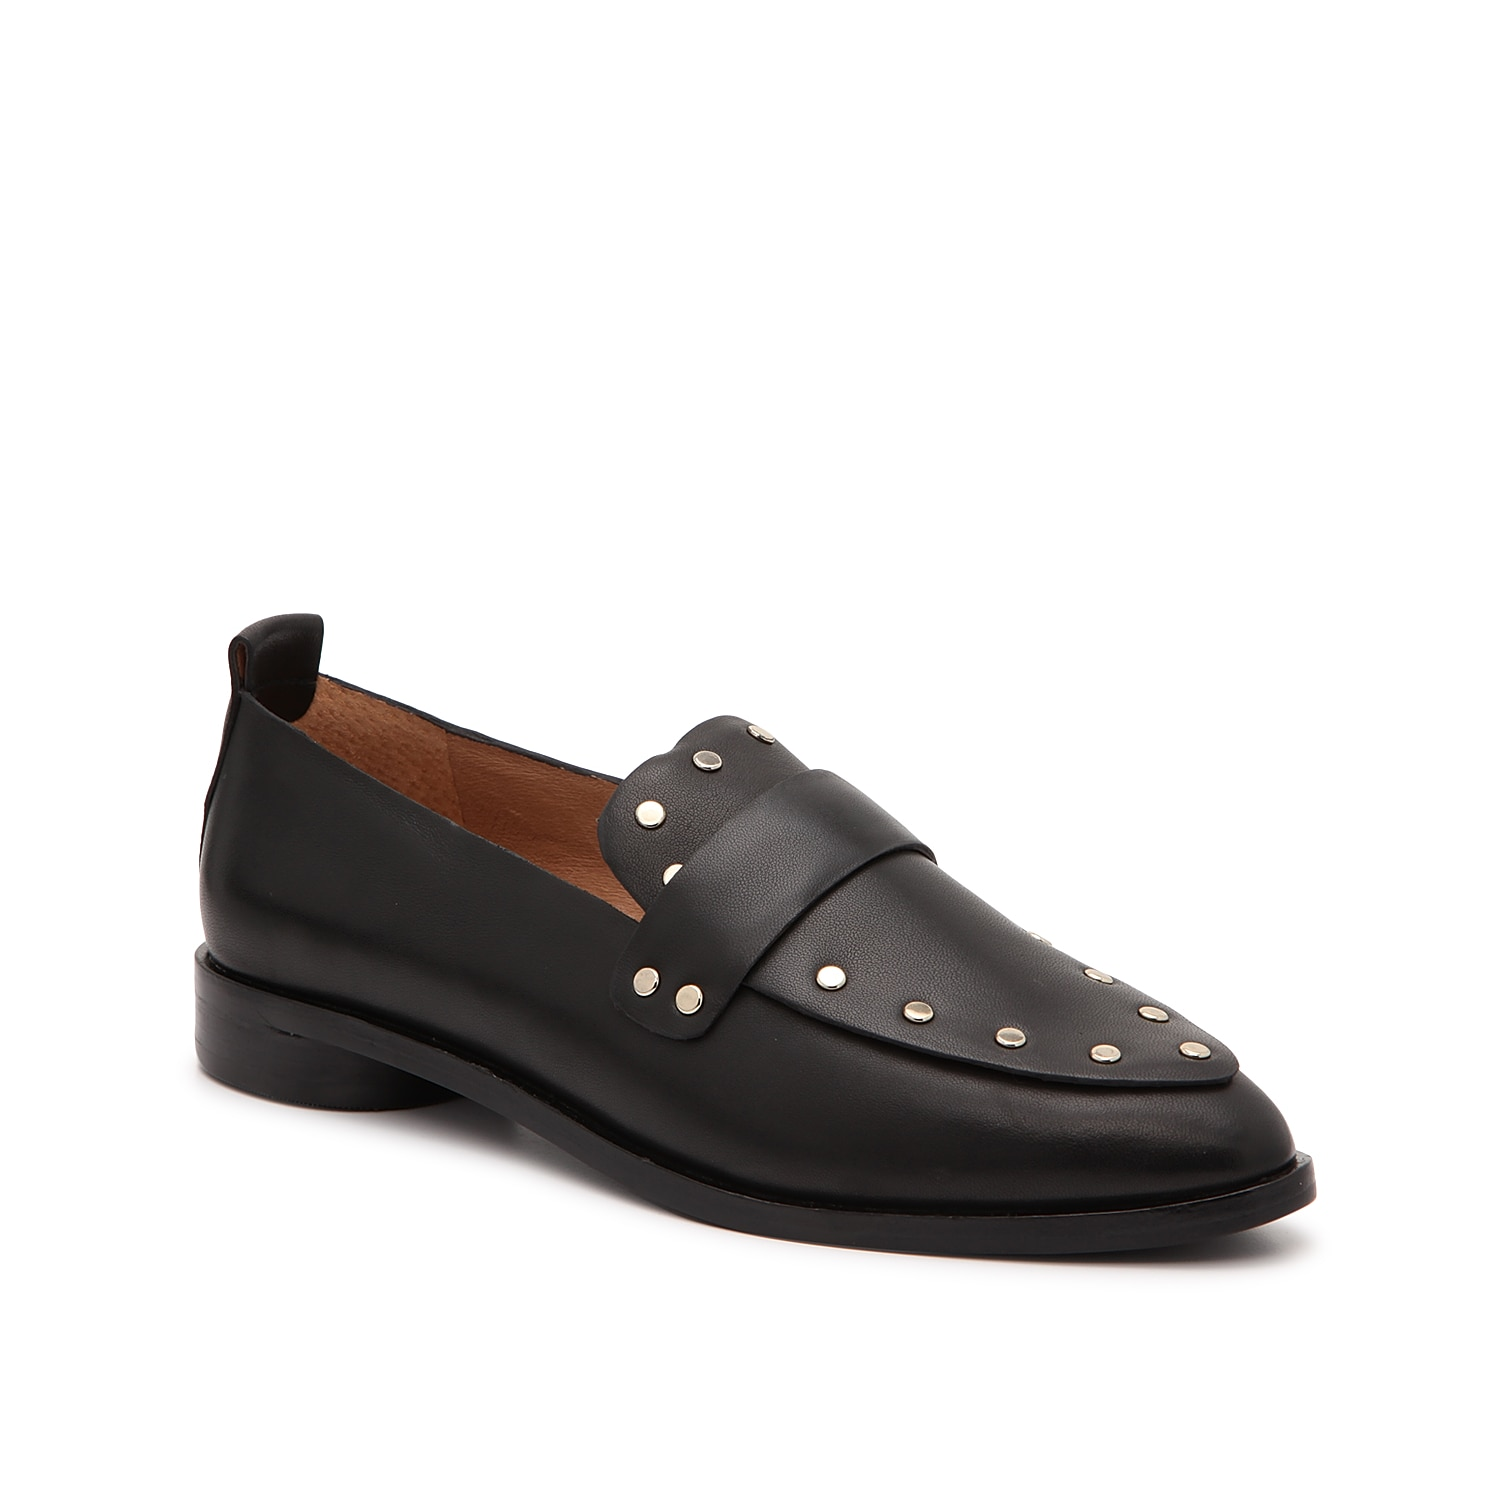 Give your ensemble an on-trend look with the Taron loafer from Joie. This flat is fashioned with smooth leather upper and stud embellishments for the perfect edge!